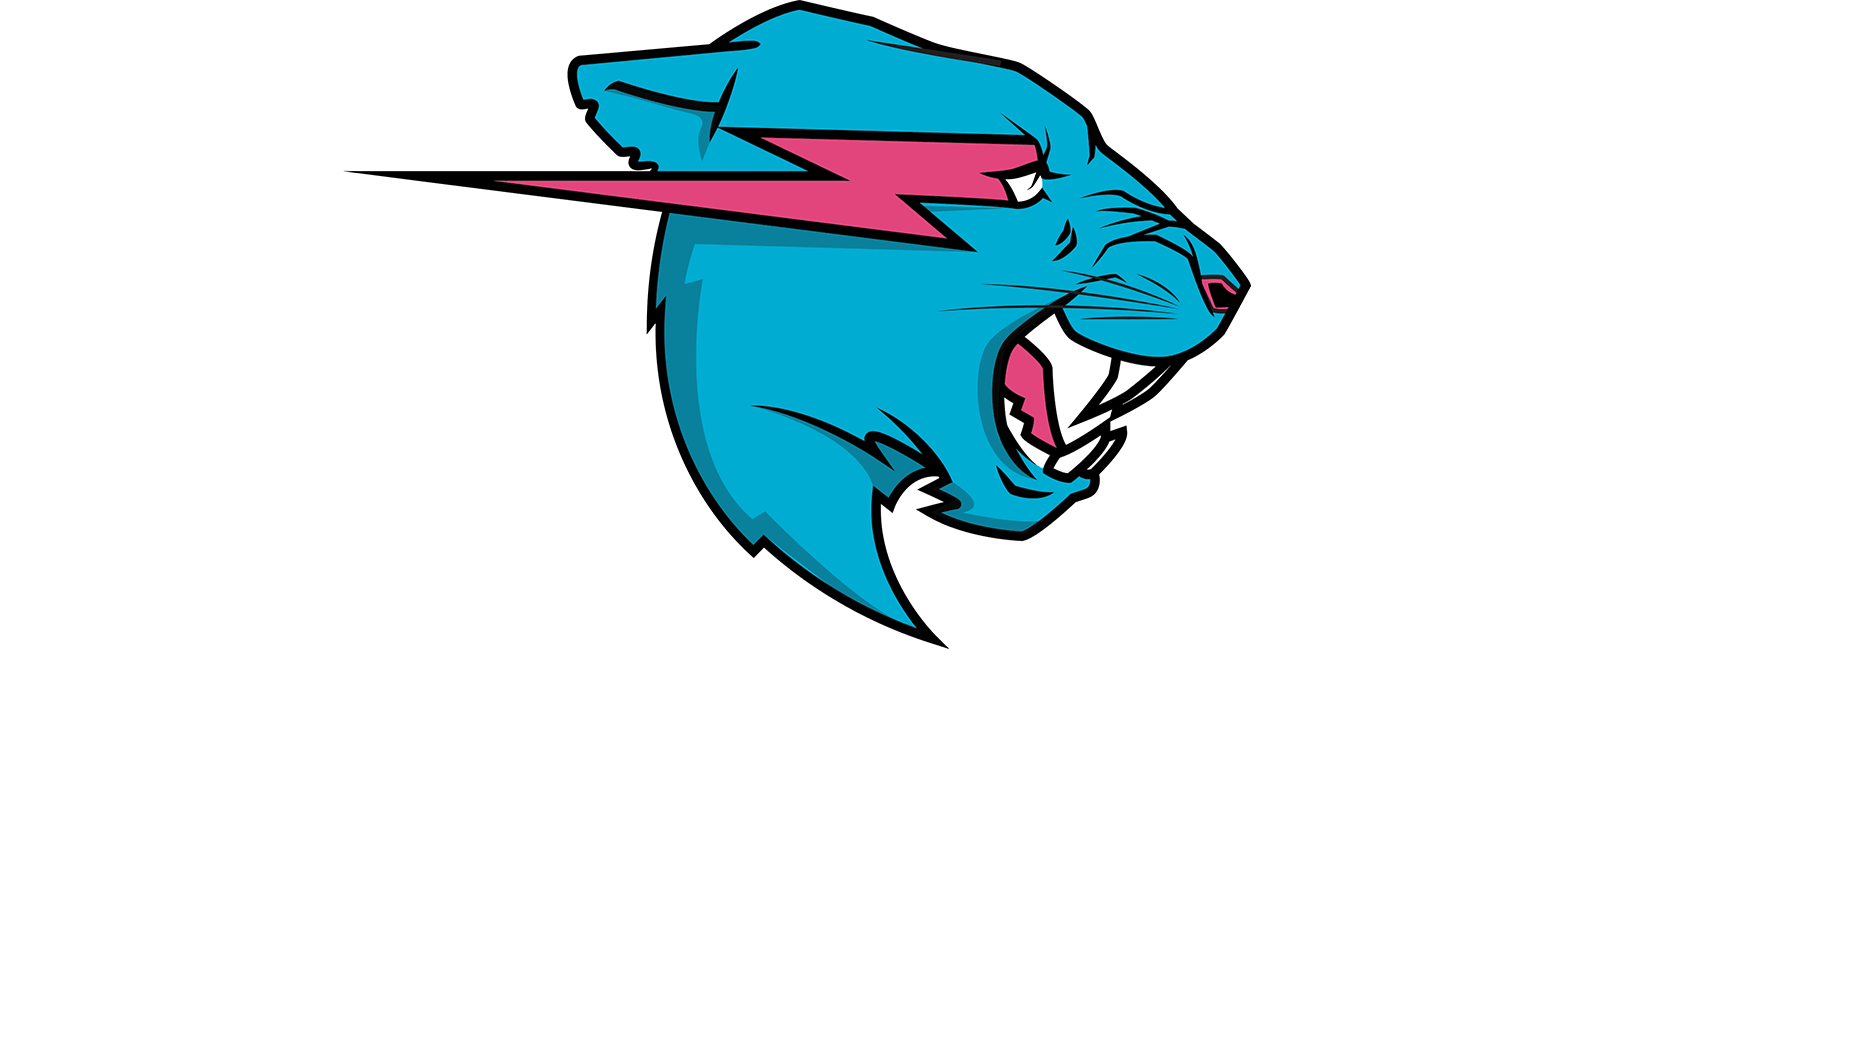 Mrbeast Logo With Text Png Image Animasi